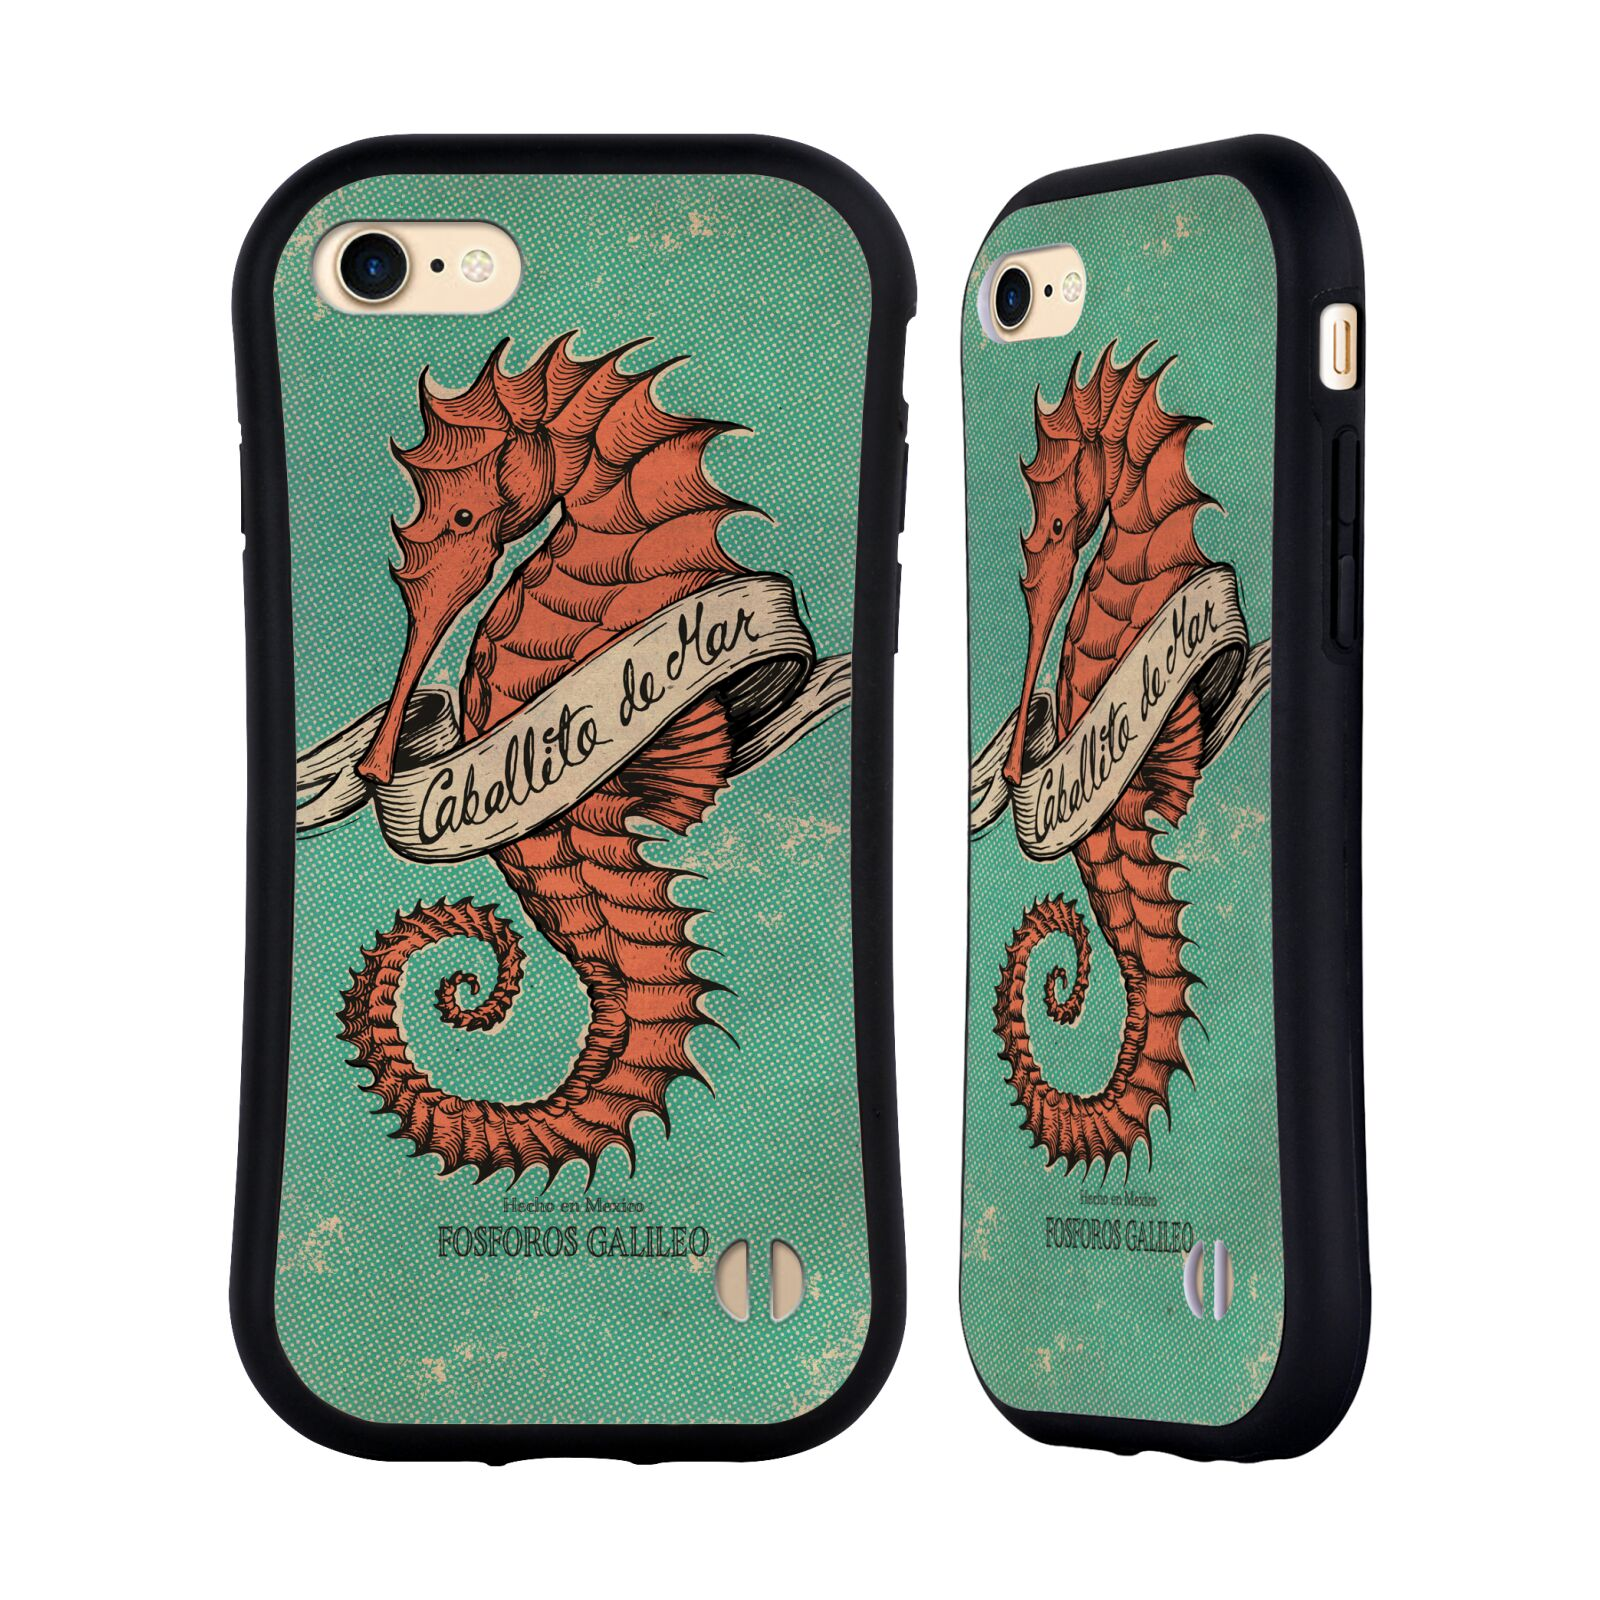 Official Fosforos Galileo Diseños Caballito De Mar Hybrid Case for Apple iPhone 7 / 8 / iPhone SE 2020